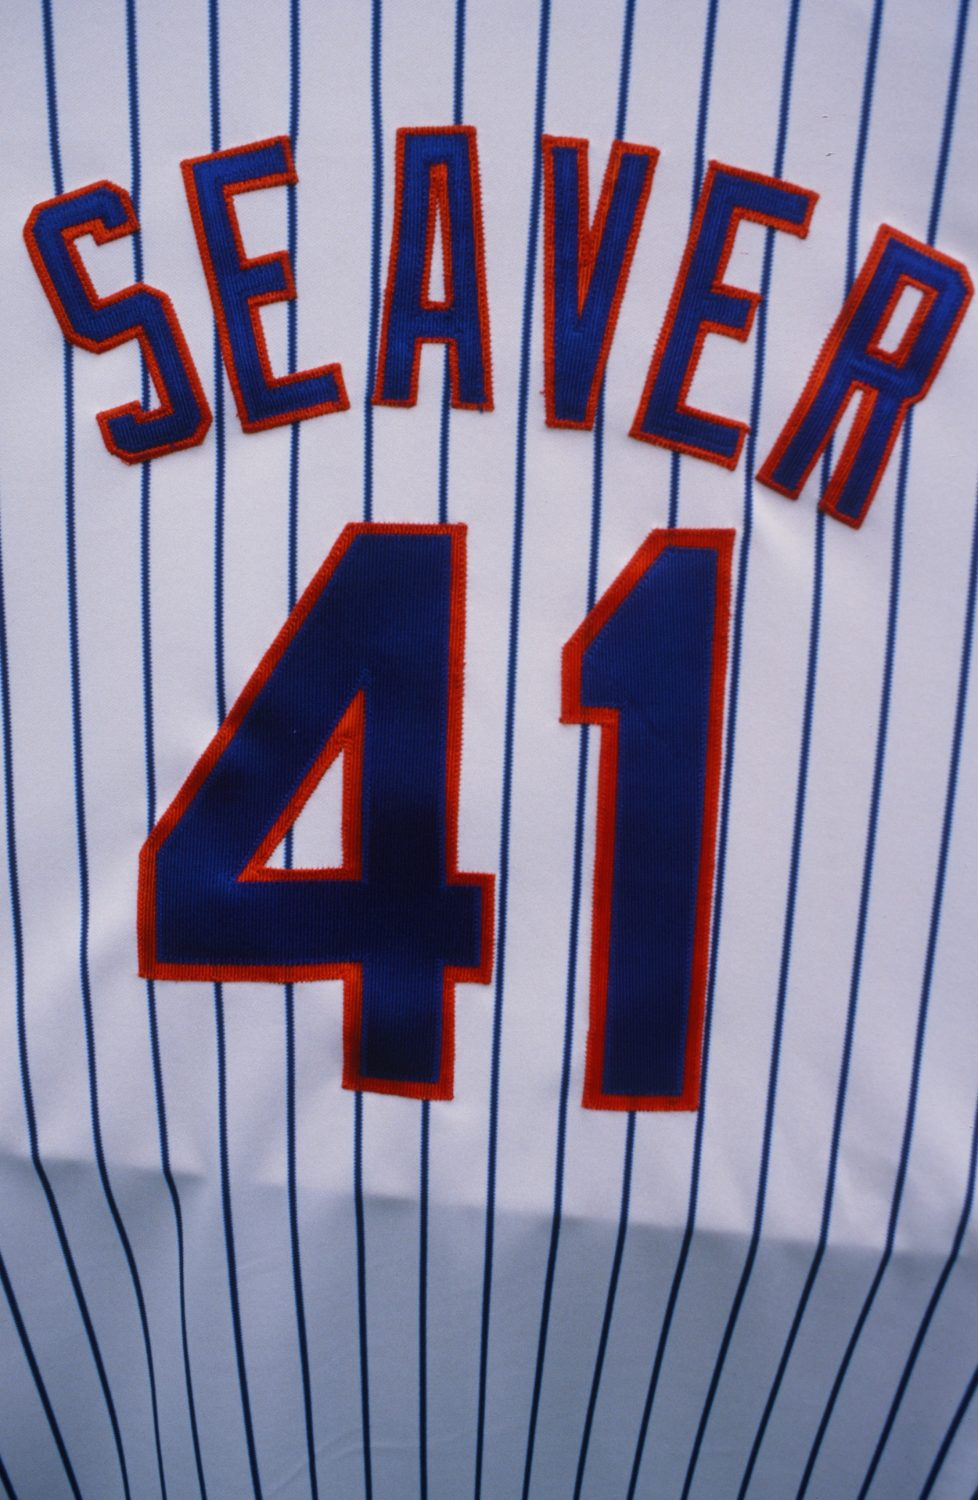 Mets Honor Tom Seaver and Retire His Number